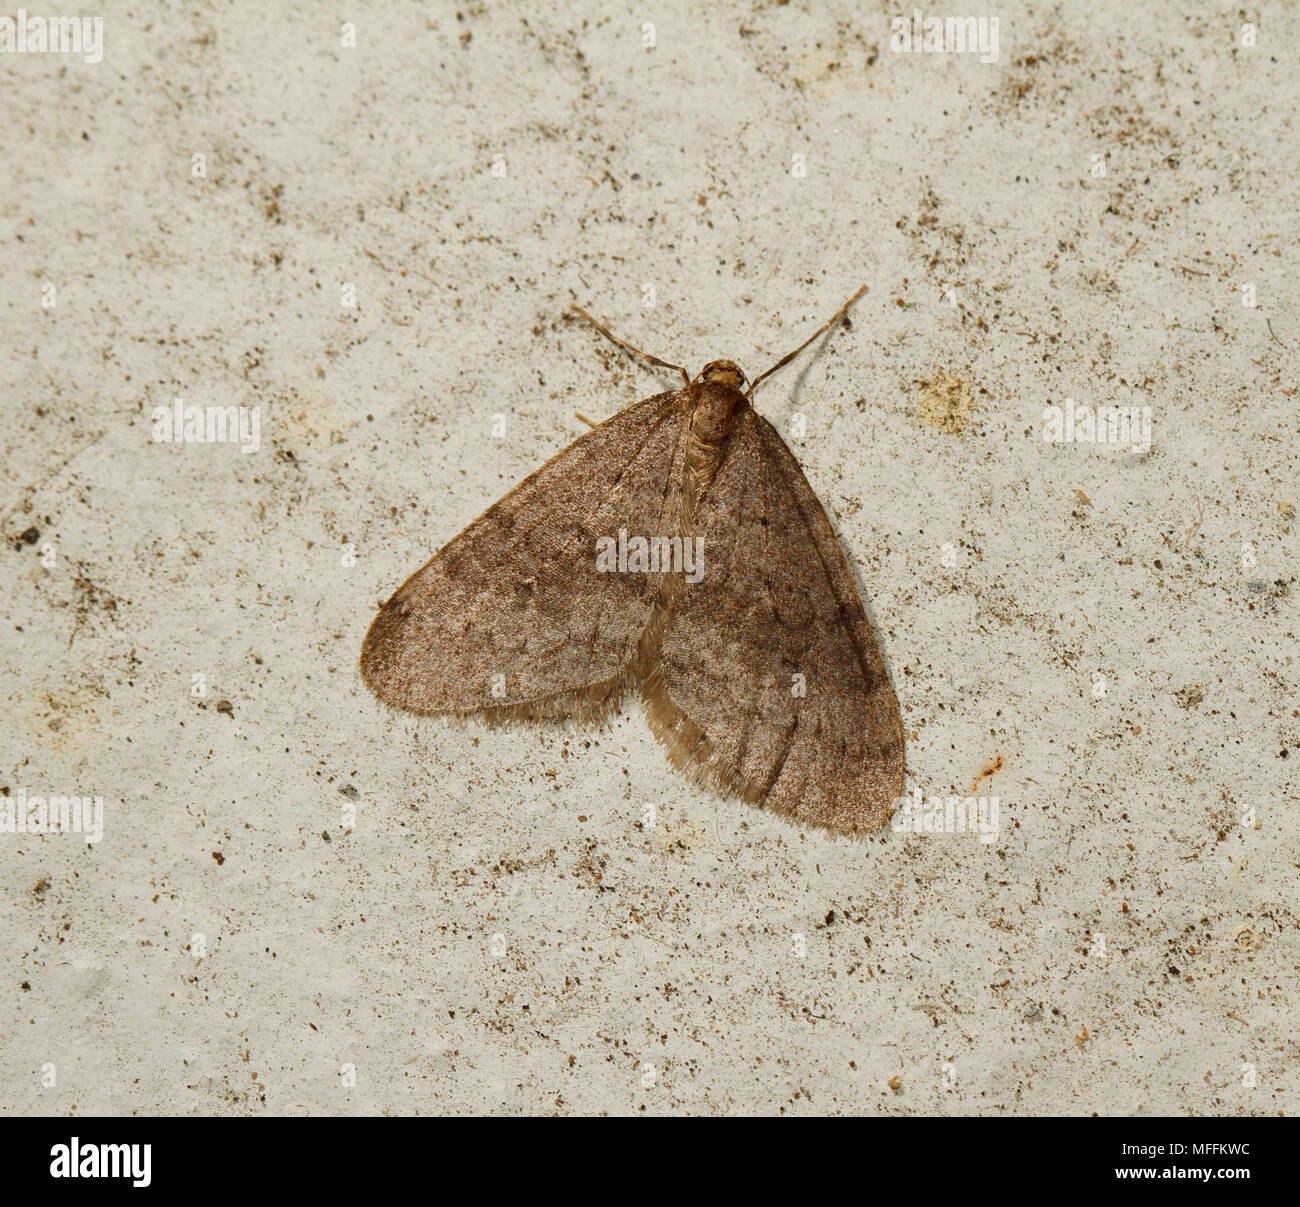 WINTER MOTH (Operophtera brumata) a winter flying moth from Oct - Jan, responsible for defoliating various trees particularly apple, Sussex, UK - Stock Image